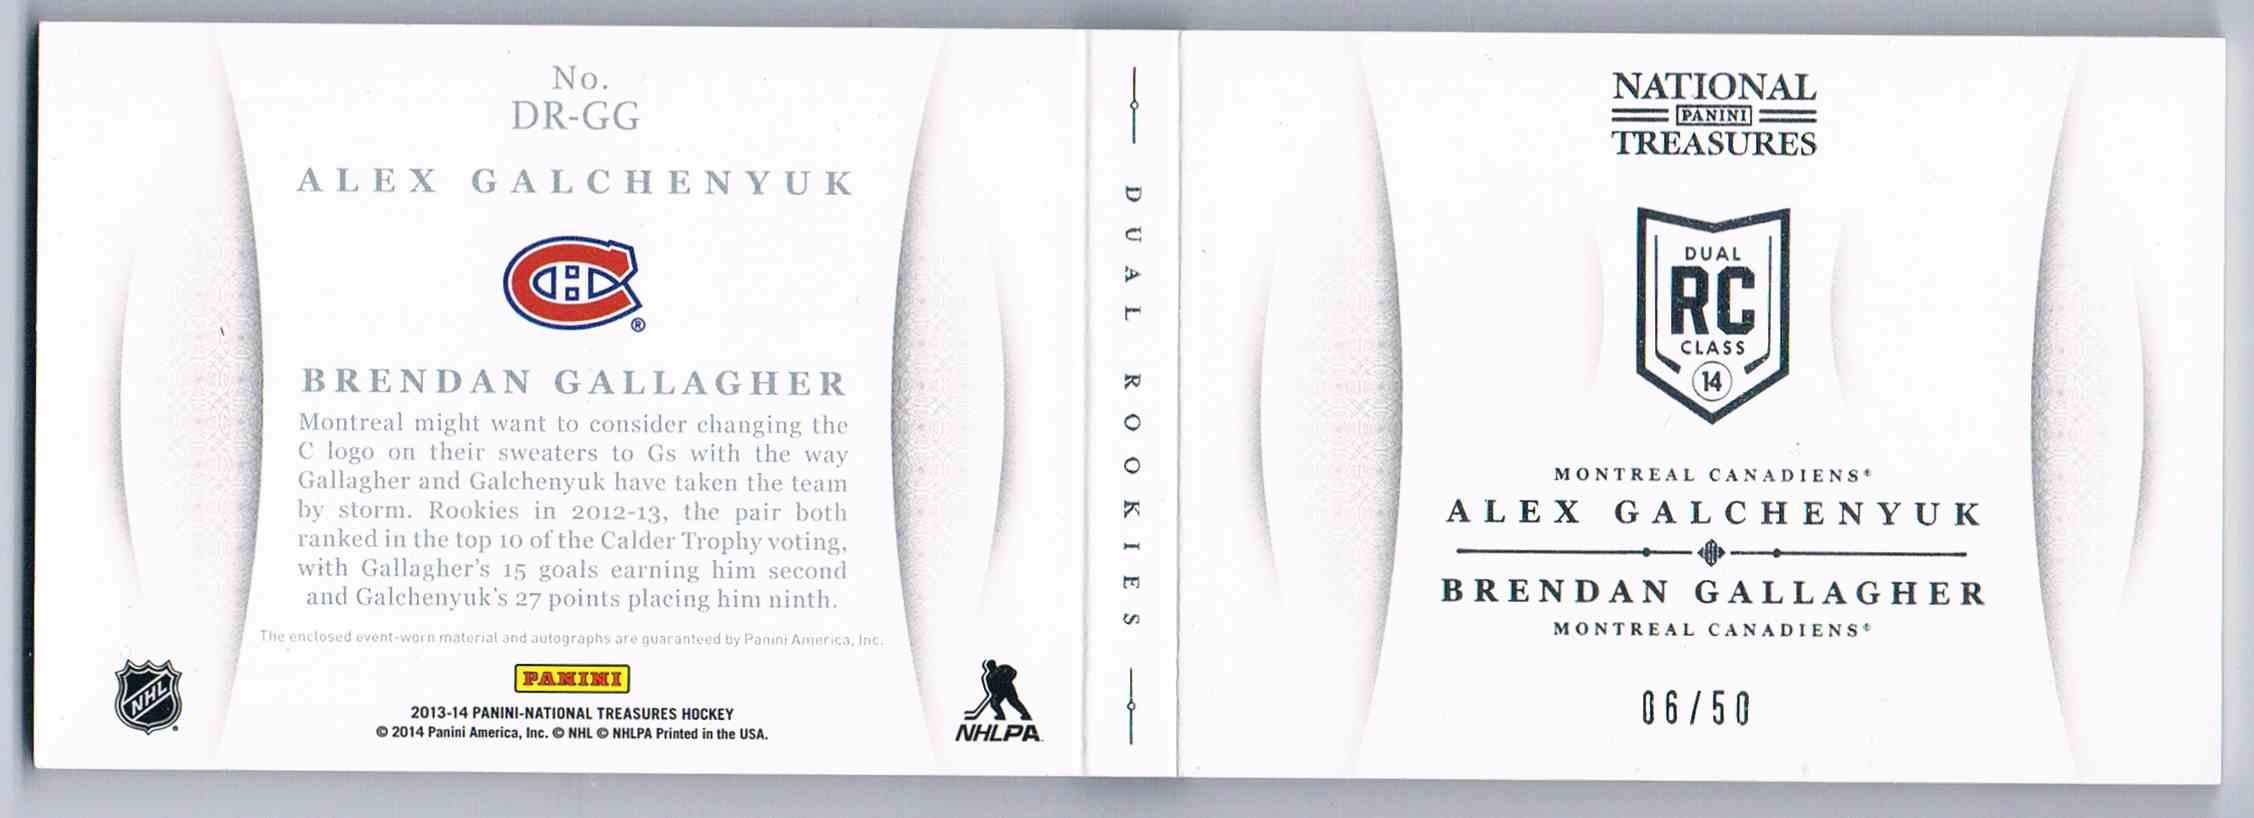 2013-14 Panini National Treasures Dual Rookie Jumbo Patch Autographs Alex Galchenyuk/Brendan Gallagher #DR-GG card back image